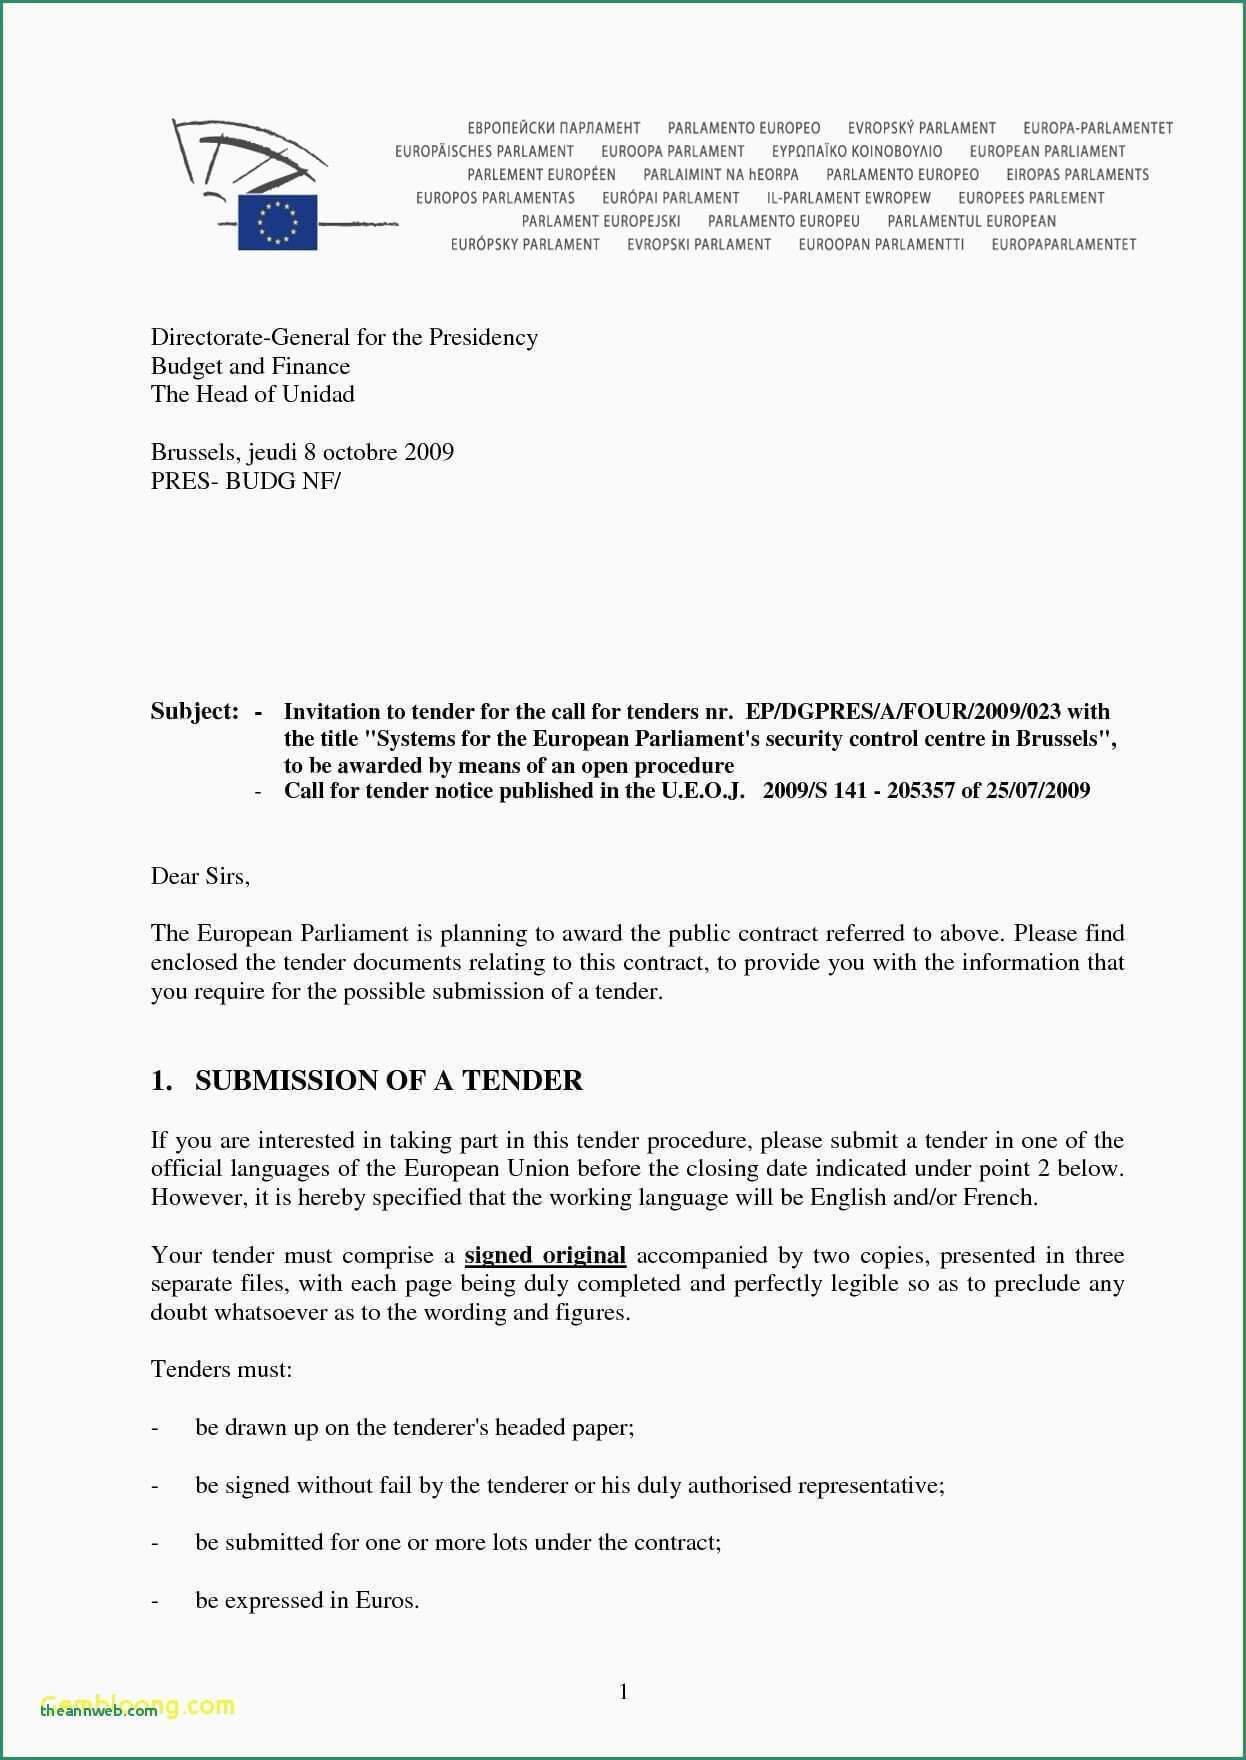 How To Use Business Letter Format In Word 2010 Microsoft throughout How To Use Templates In Word 2010